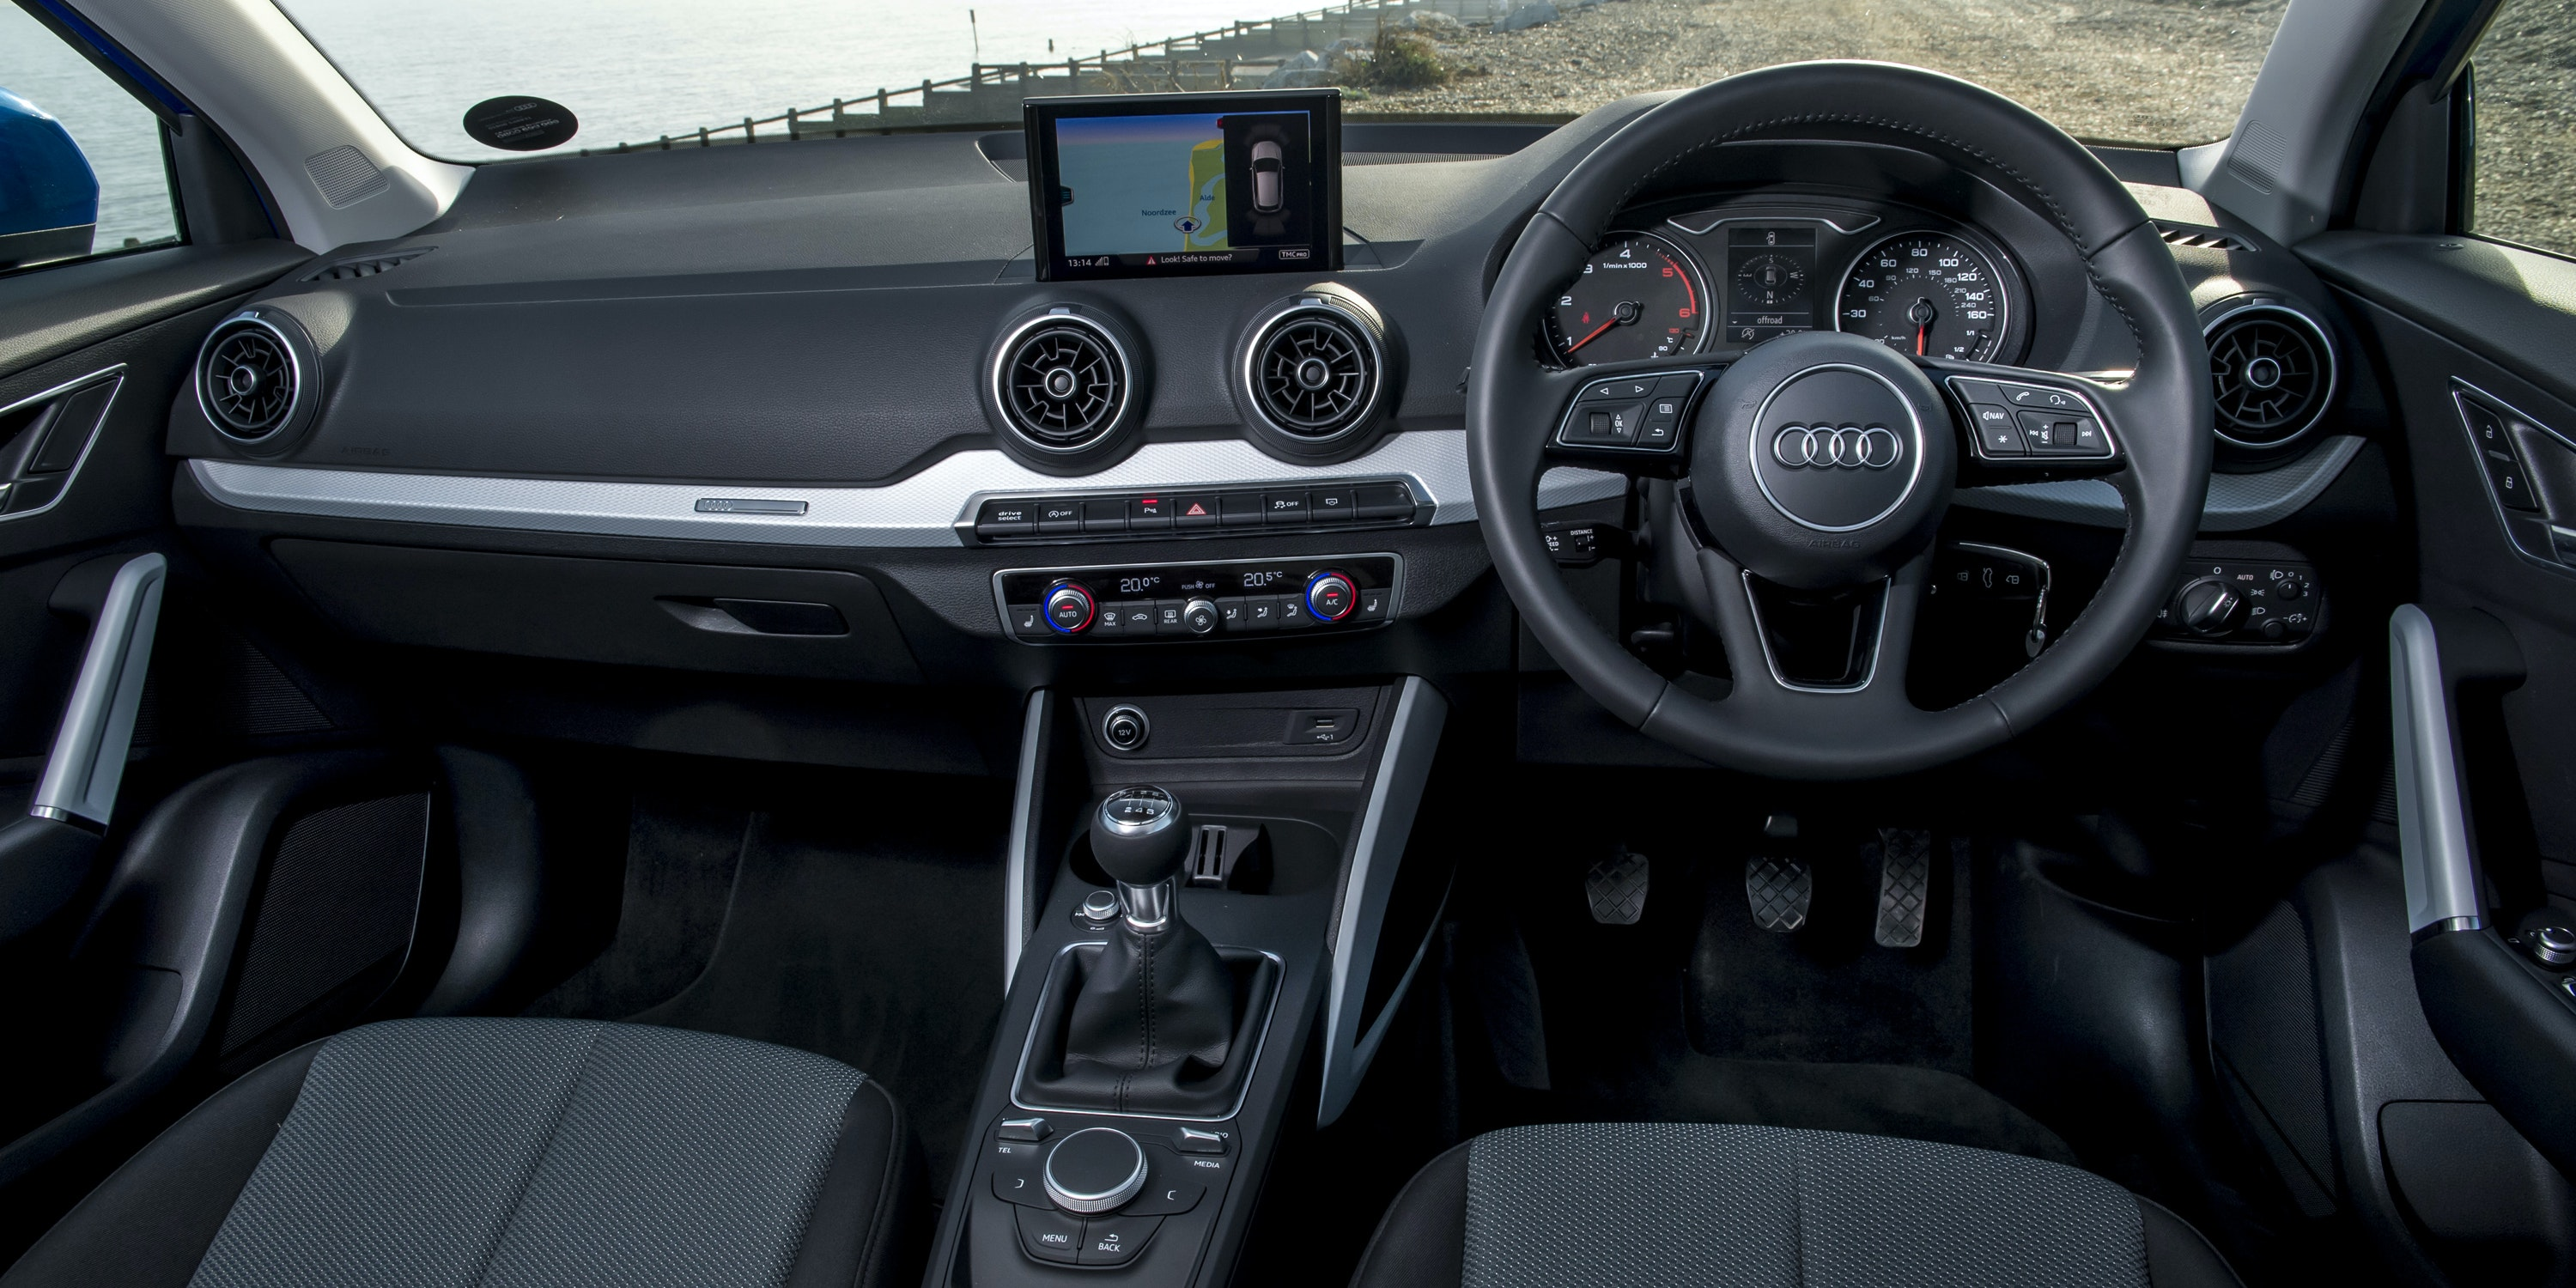 The Q2's minimalist interior is well built and plush